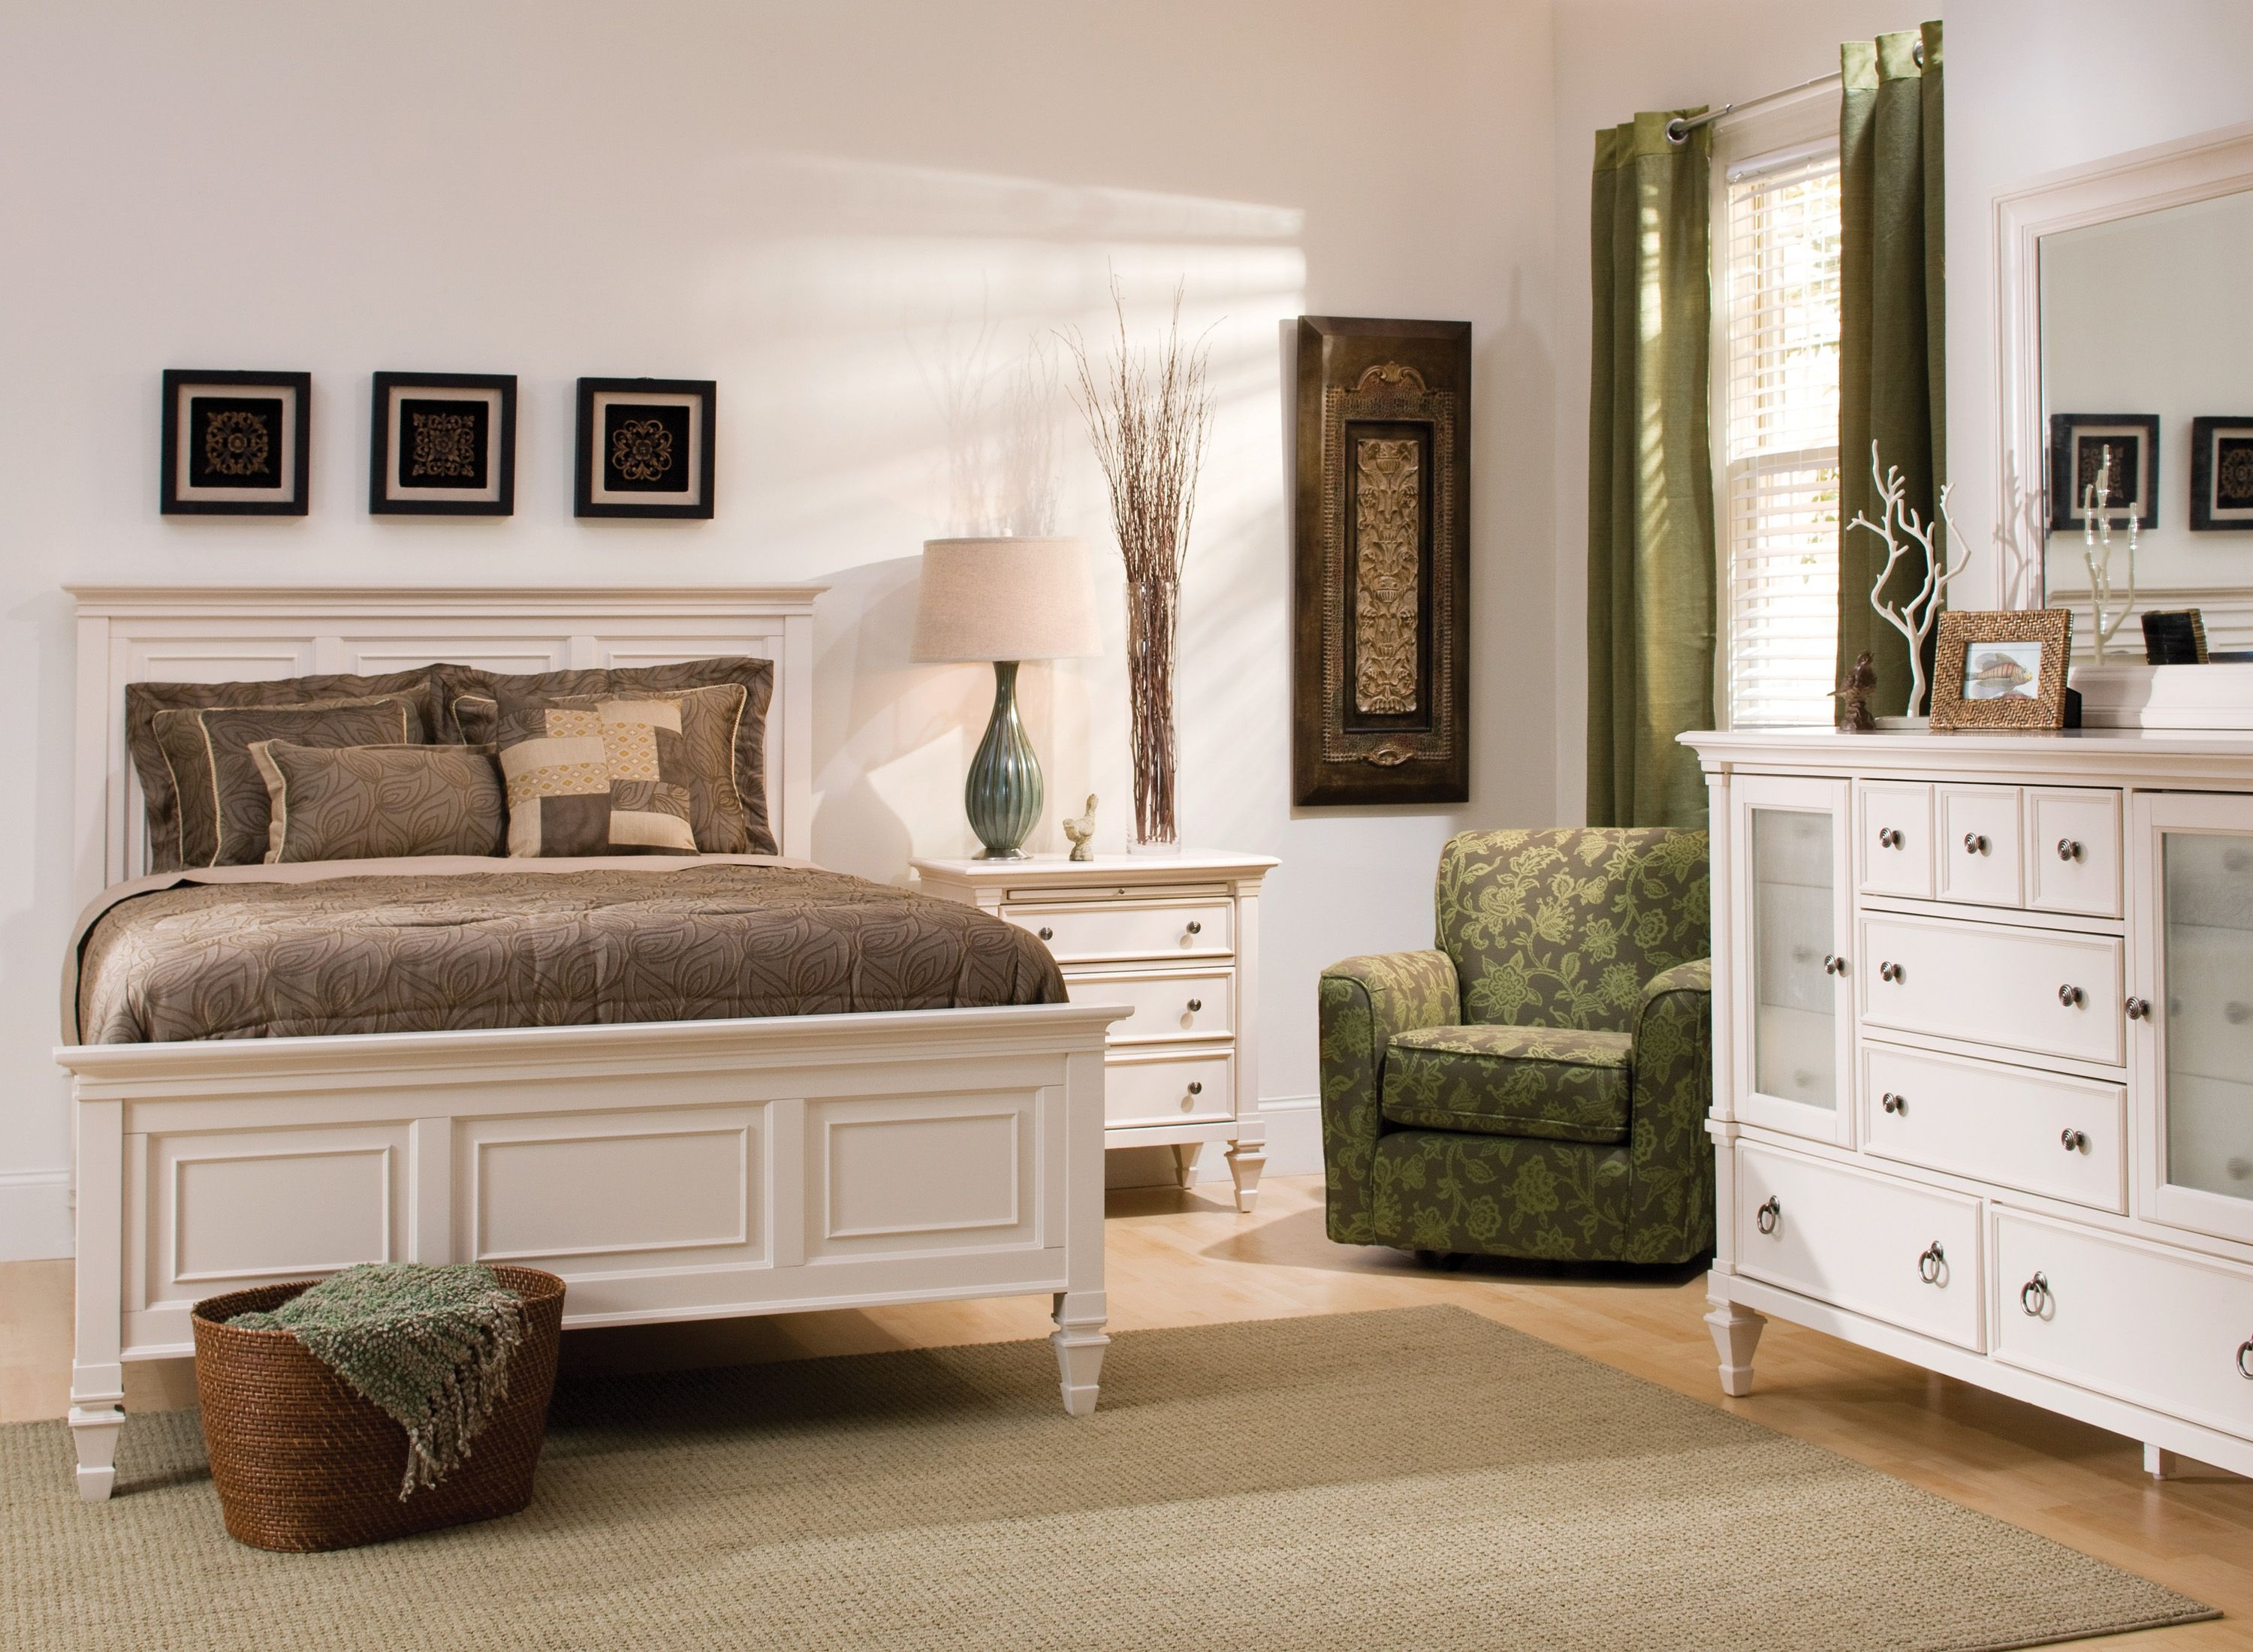 This Breathtaking Somerset 4Piece Queen Bedroom Set In Alabaster Unique Raymour And Flanigan Bedroom Sets Design Inspiration